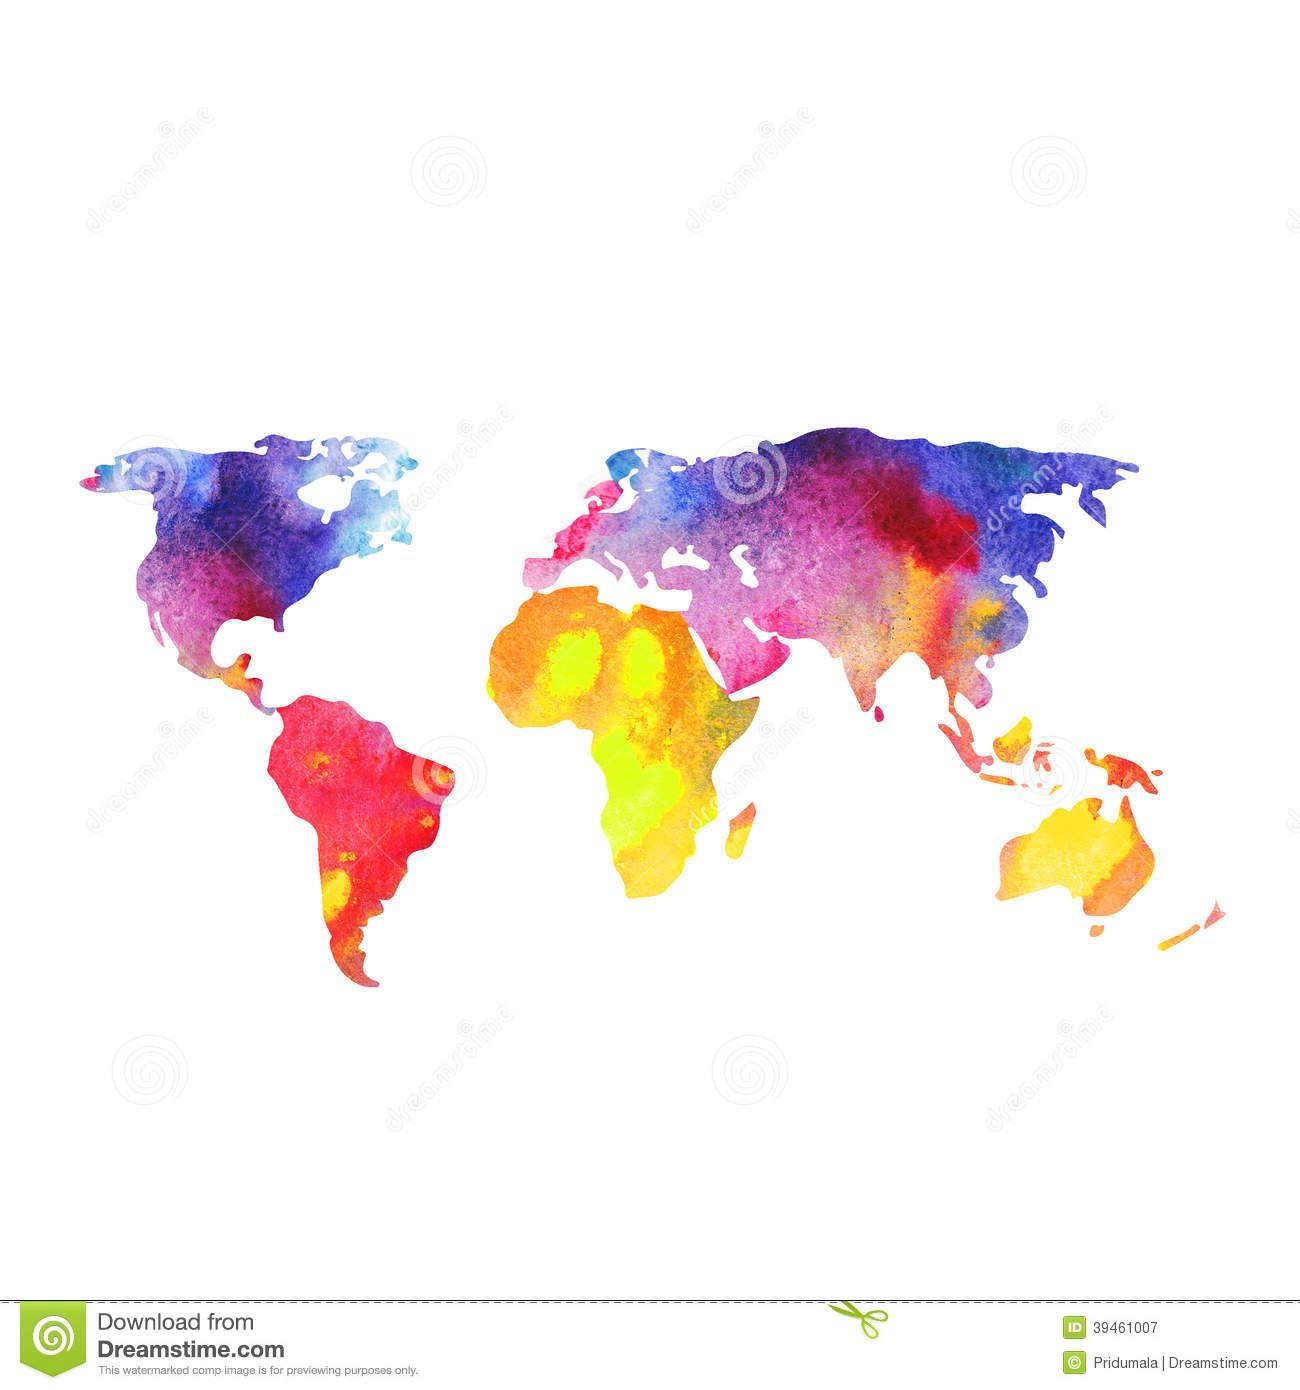 World map painted with watercolors painted world map on download world map painted with watercolors painted world map on download from over 41 million high quality stock photos images vectors sign up for free today gumiabroncs Gallery